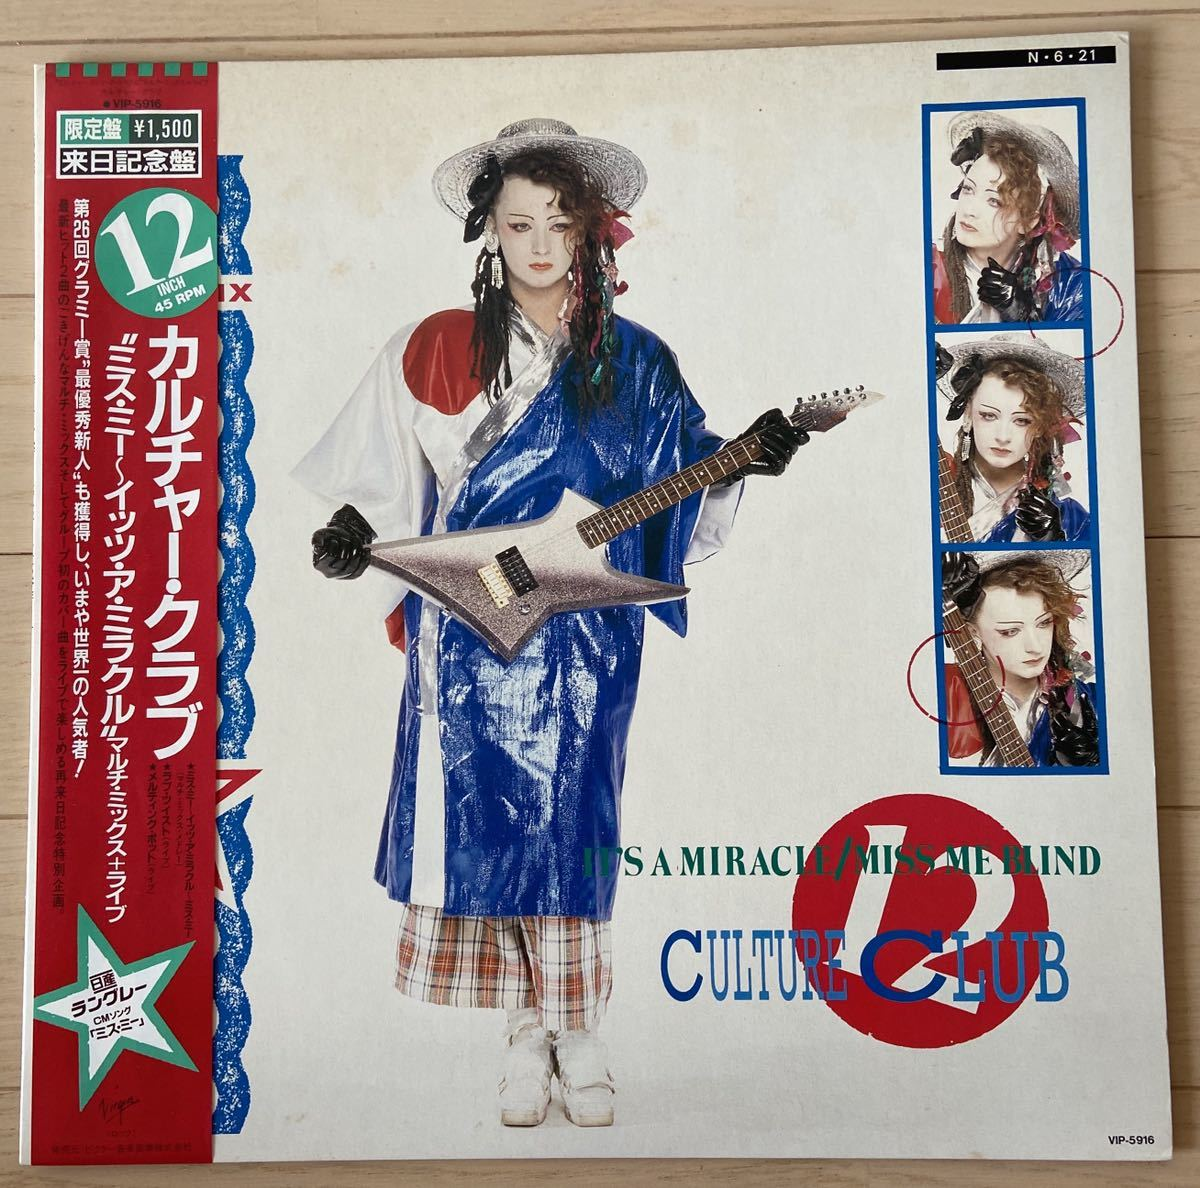 ITS A MIRACLE / MISS ME BLIND ミス ミー~イッツ ア ミラクル マルチミックス+ライブ 来日記念盤 CULTURE CLUB カルチャークラブ_画像1